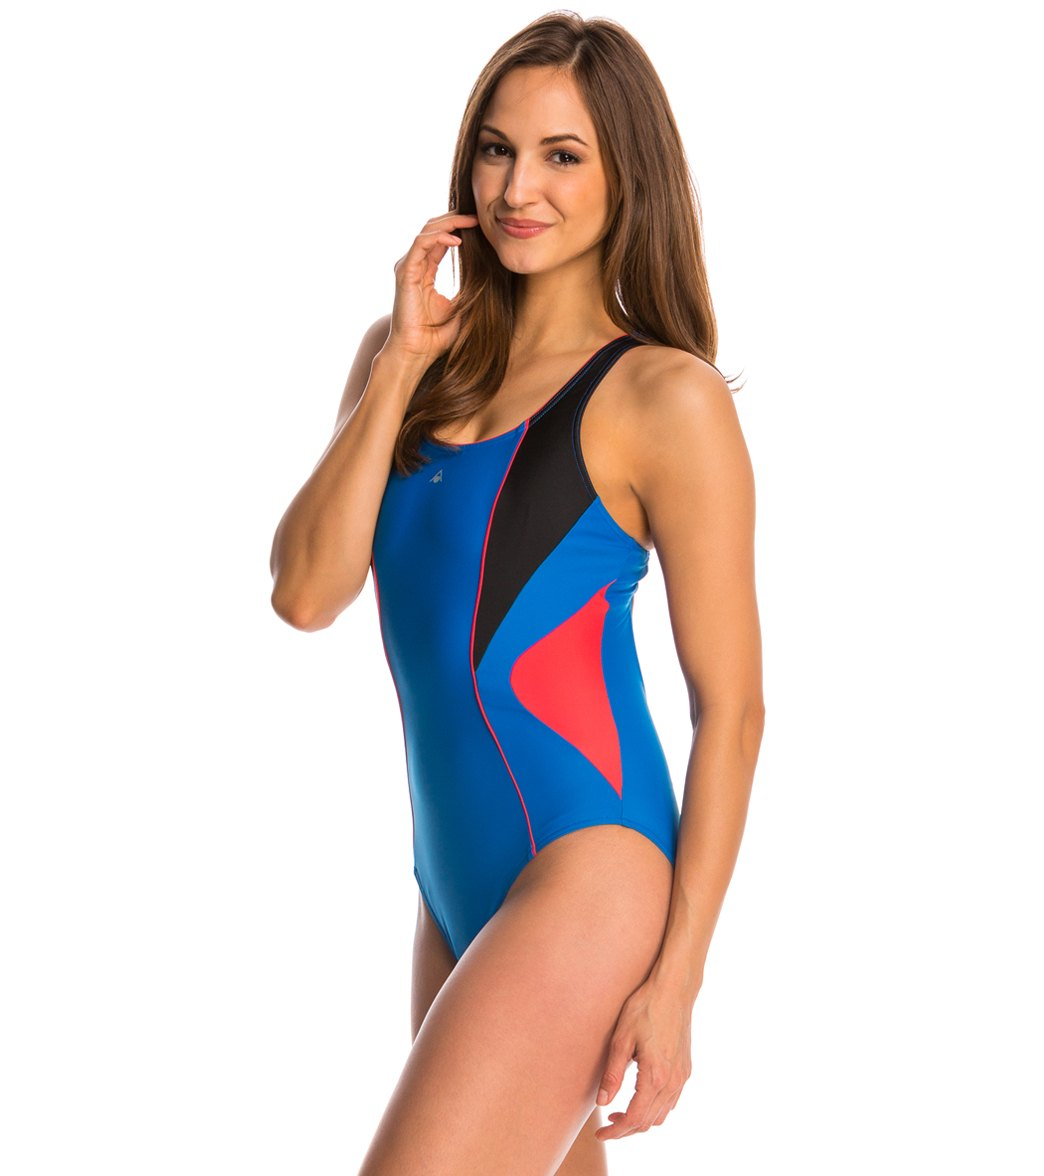 88ffe3a4e695 Aqua Sphere Chelsea One Piece Swimsuit at SwimOutlet.com - Free Shipping